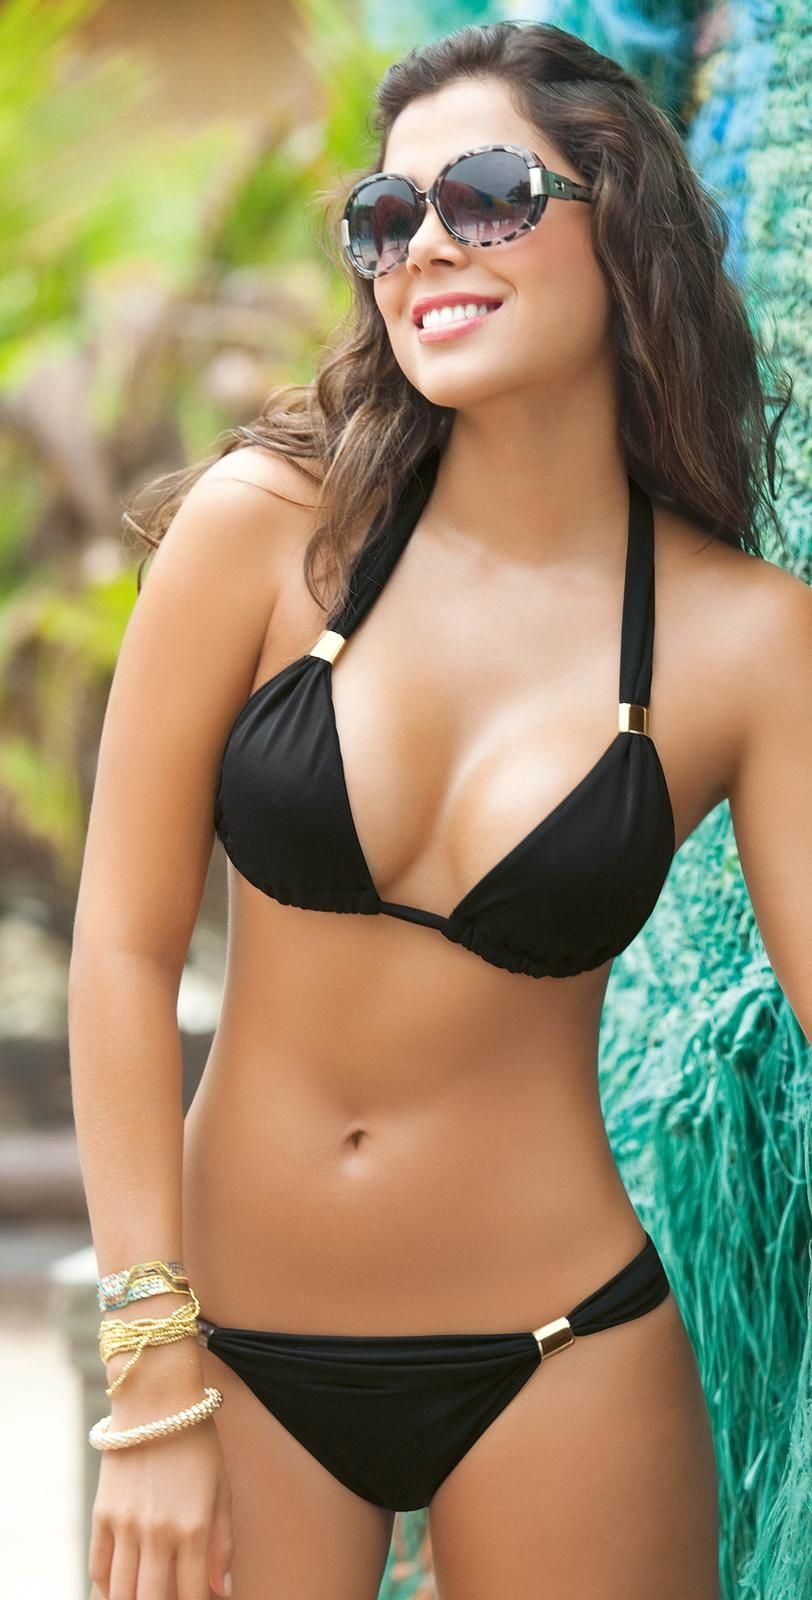 Top 50 Designer Bikinis And Swimsuits